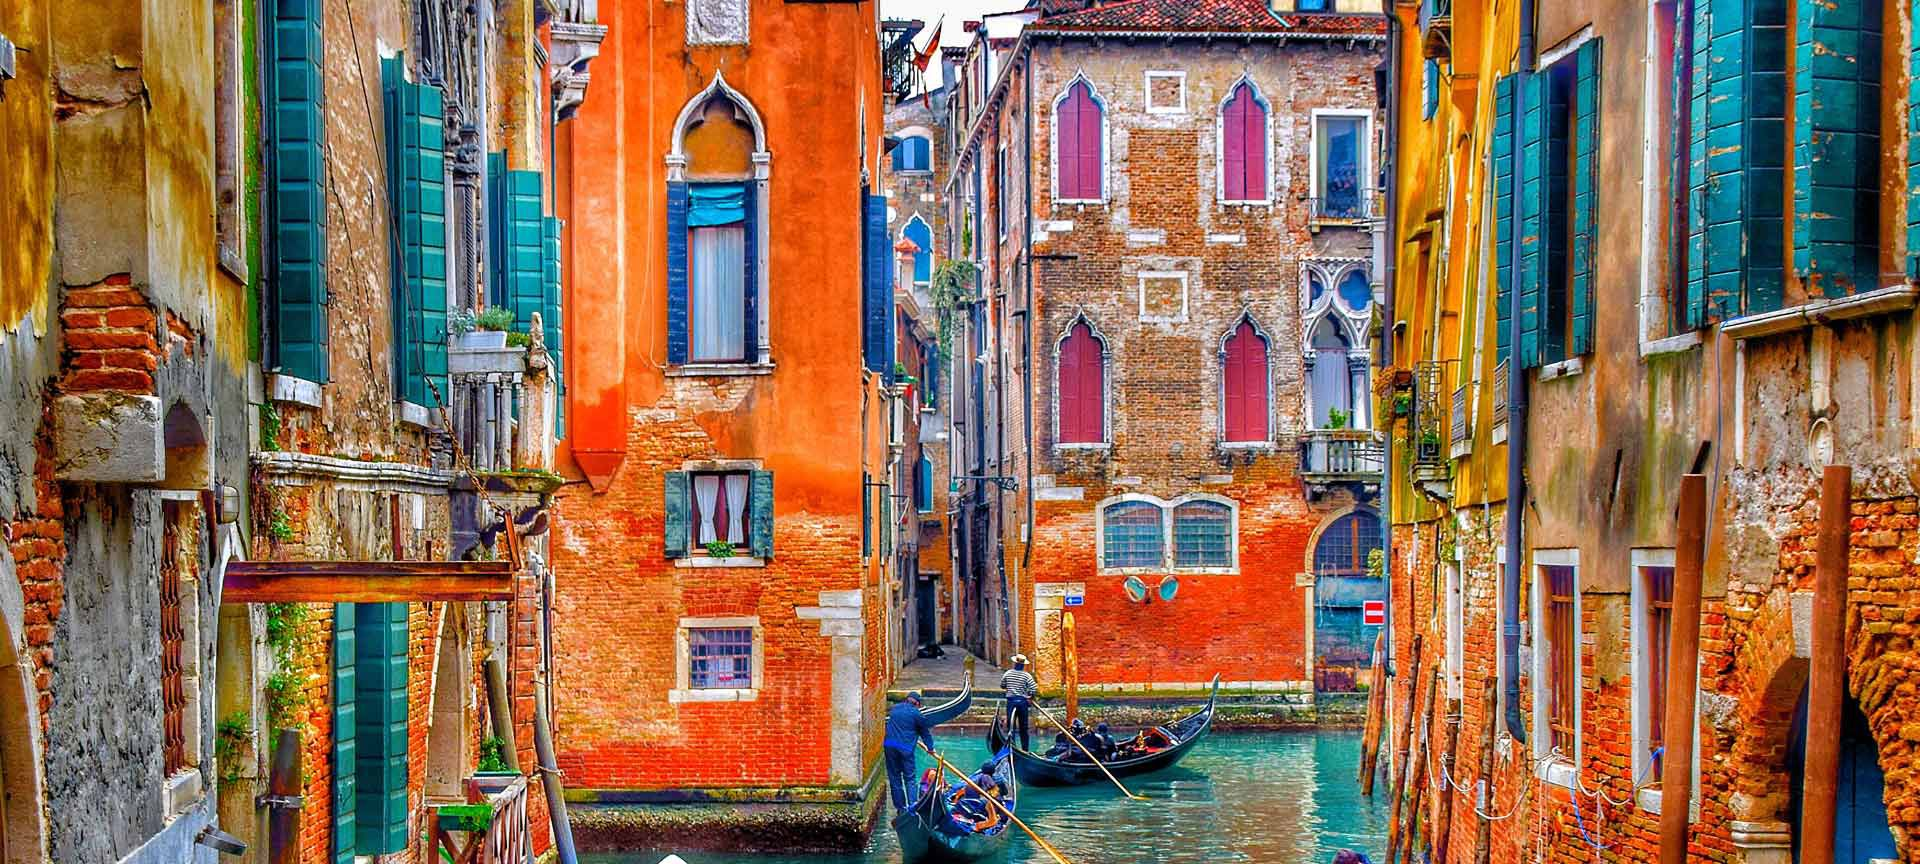 Painted building in Venice Italy